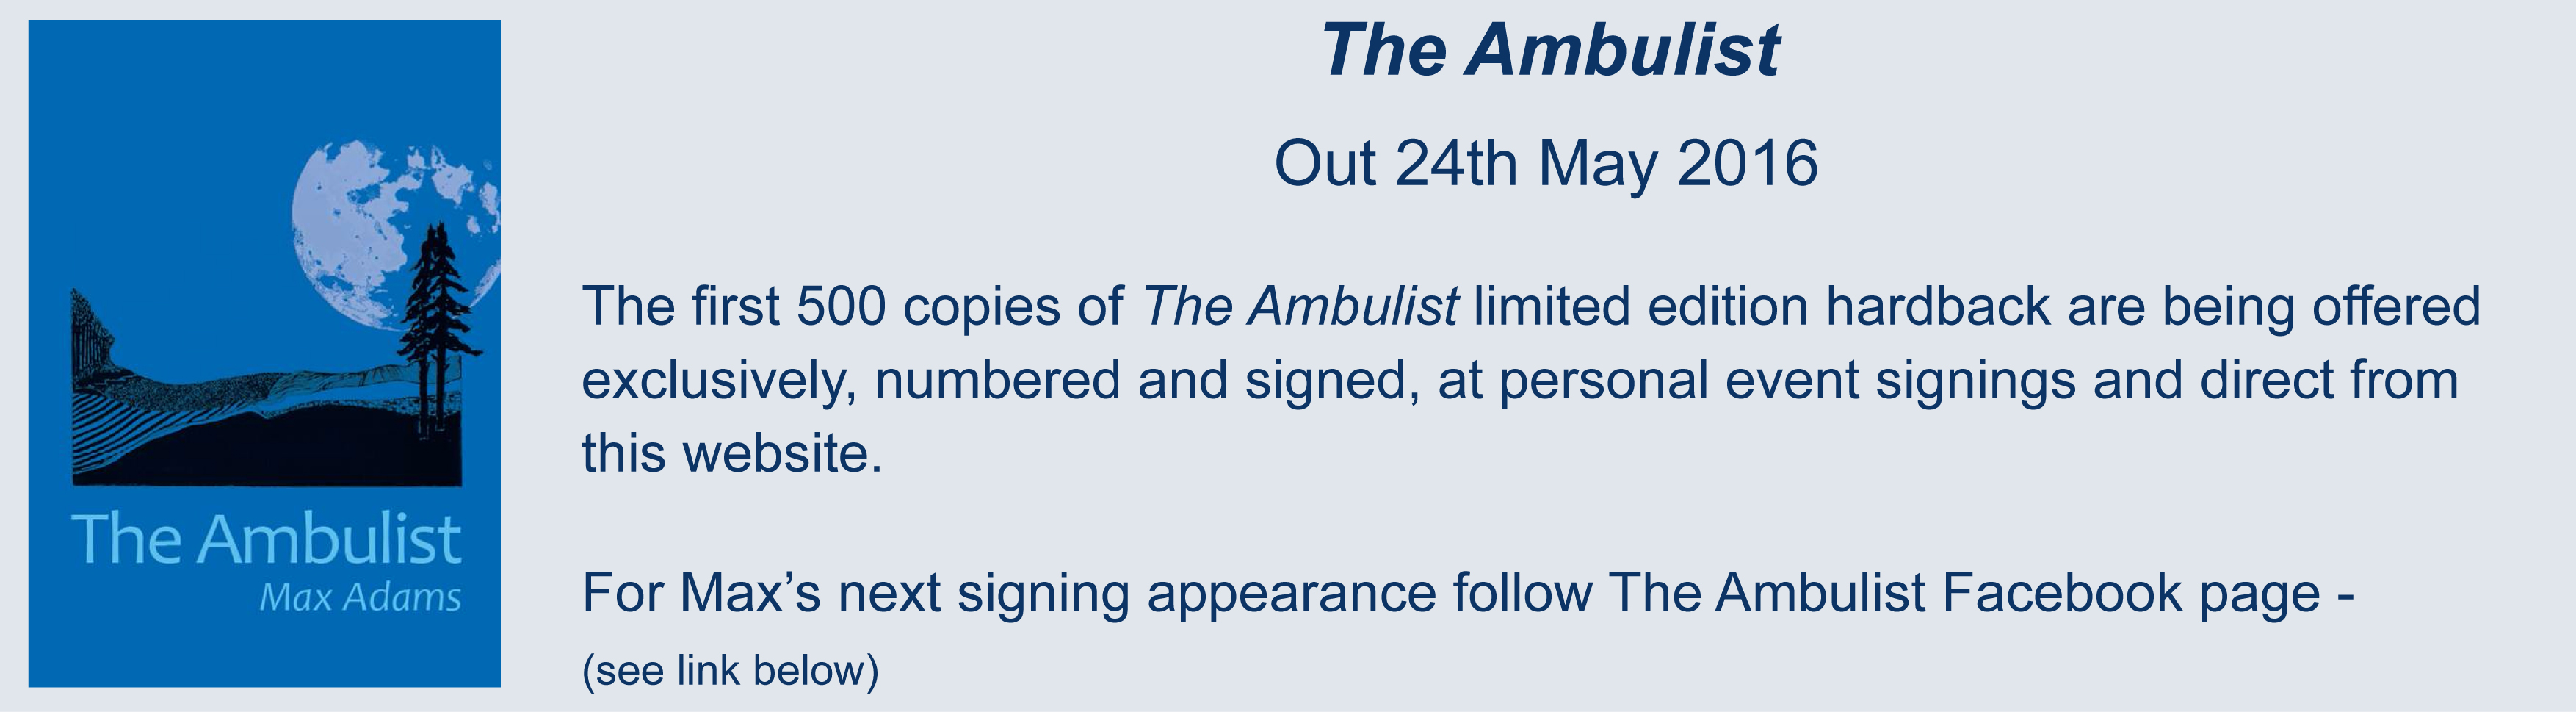 Ambulist-offer-banner